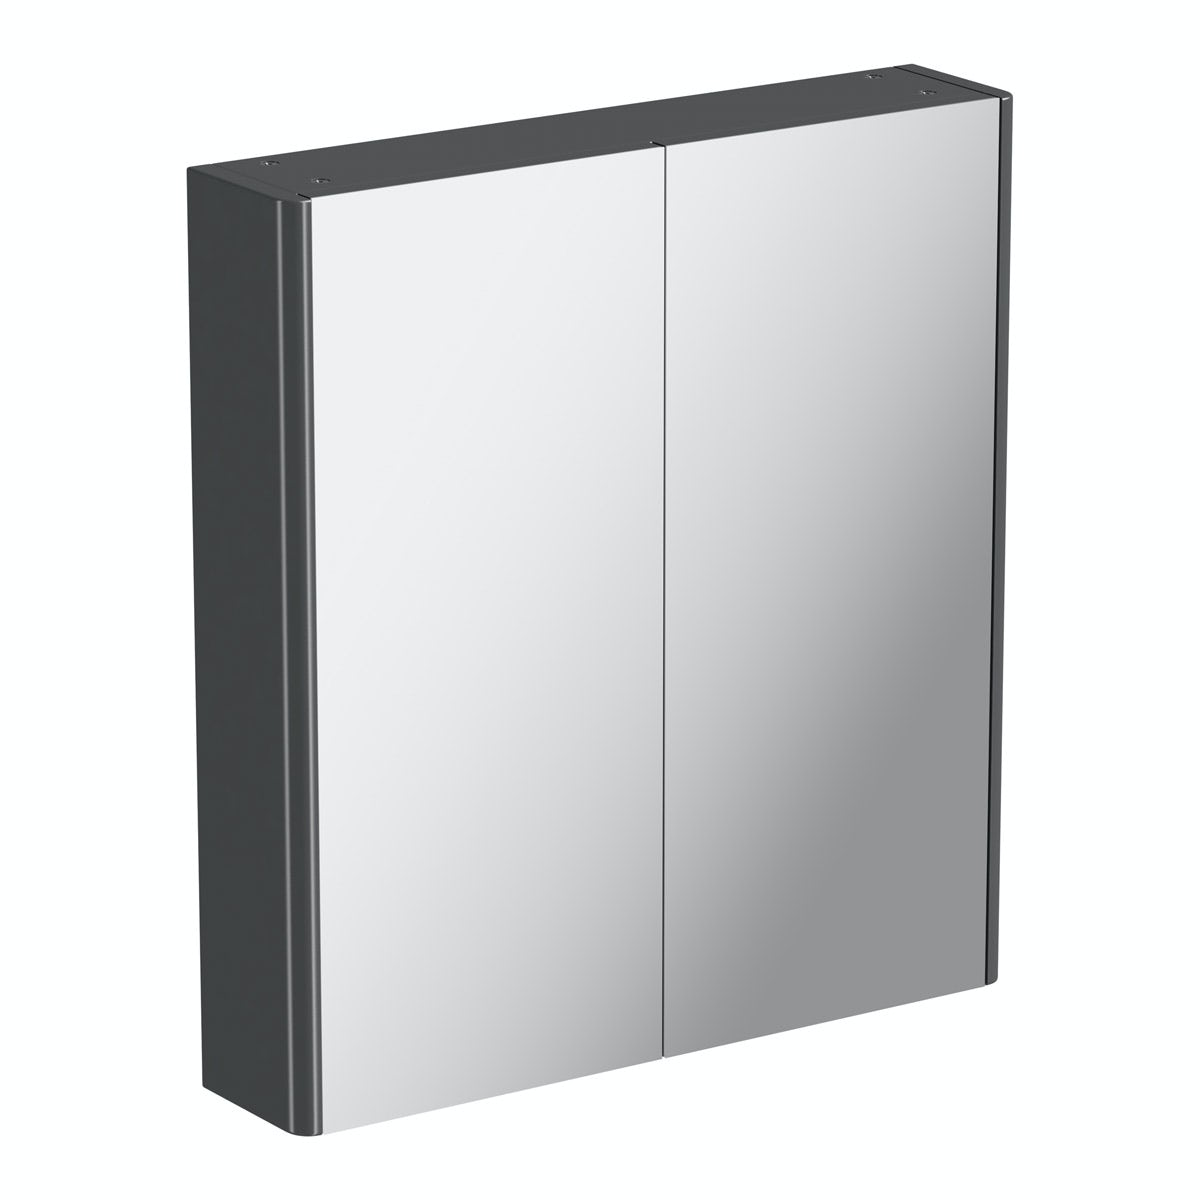 Mode slate grey curved mirror cabinet 650 x 600mm